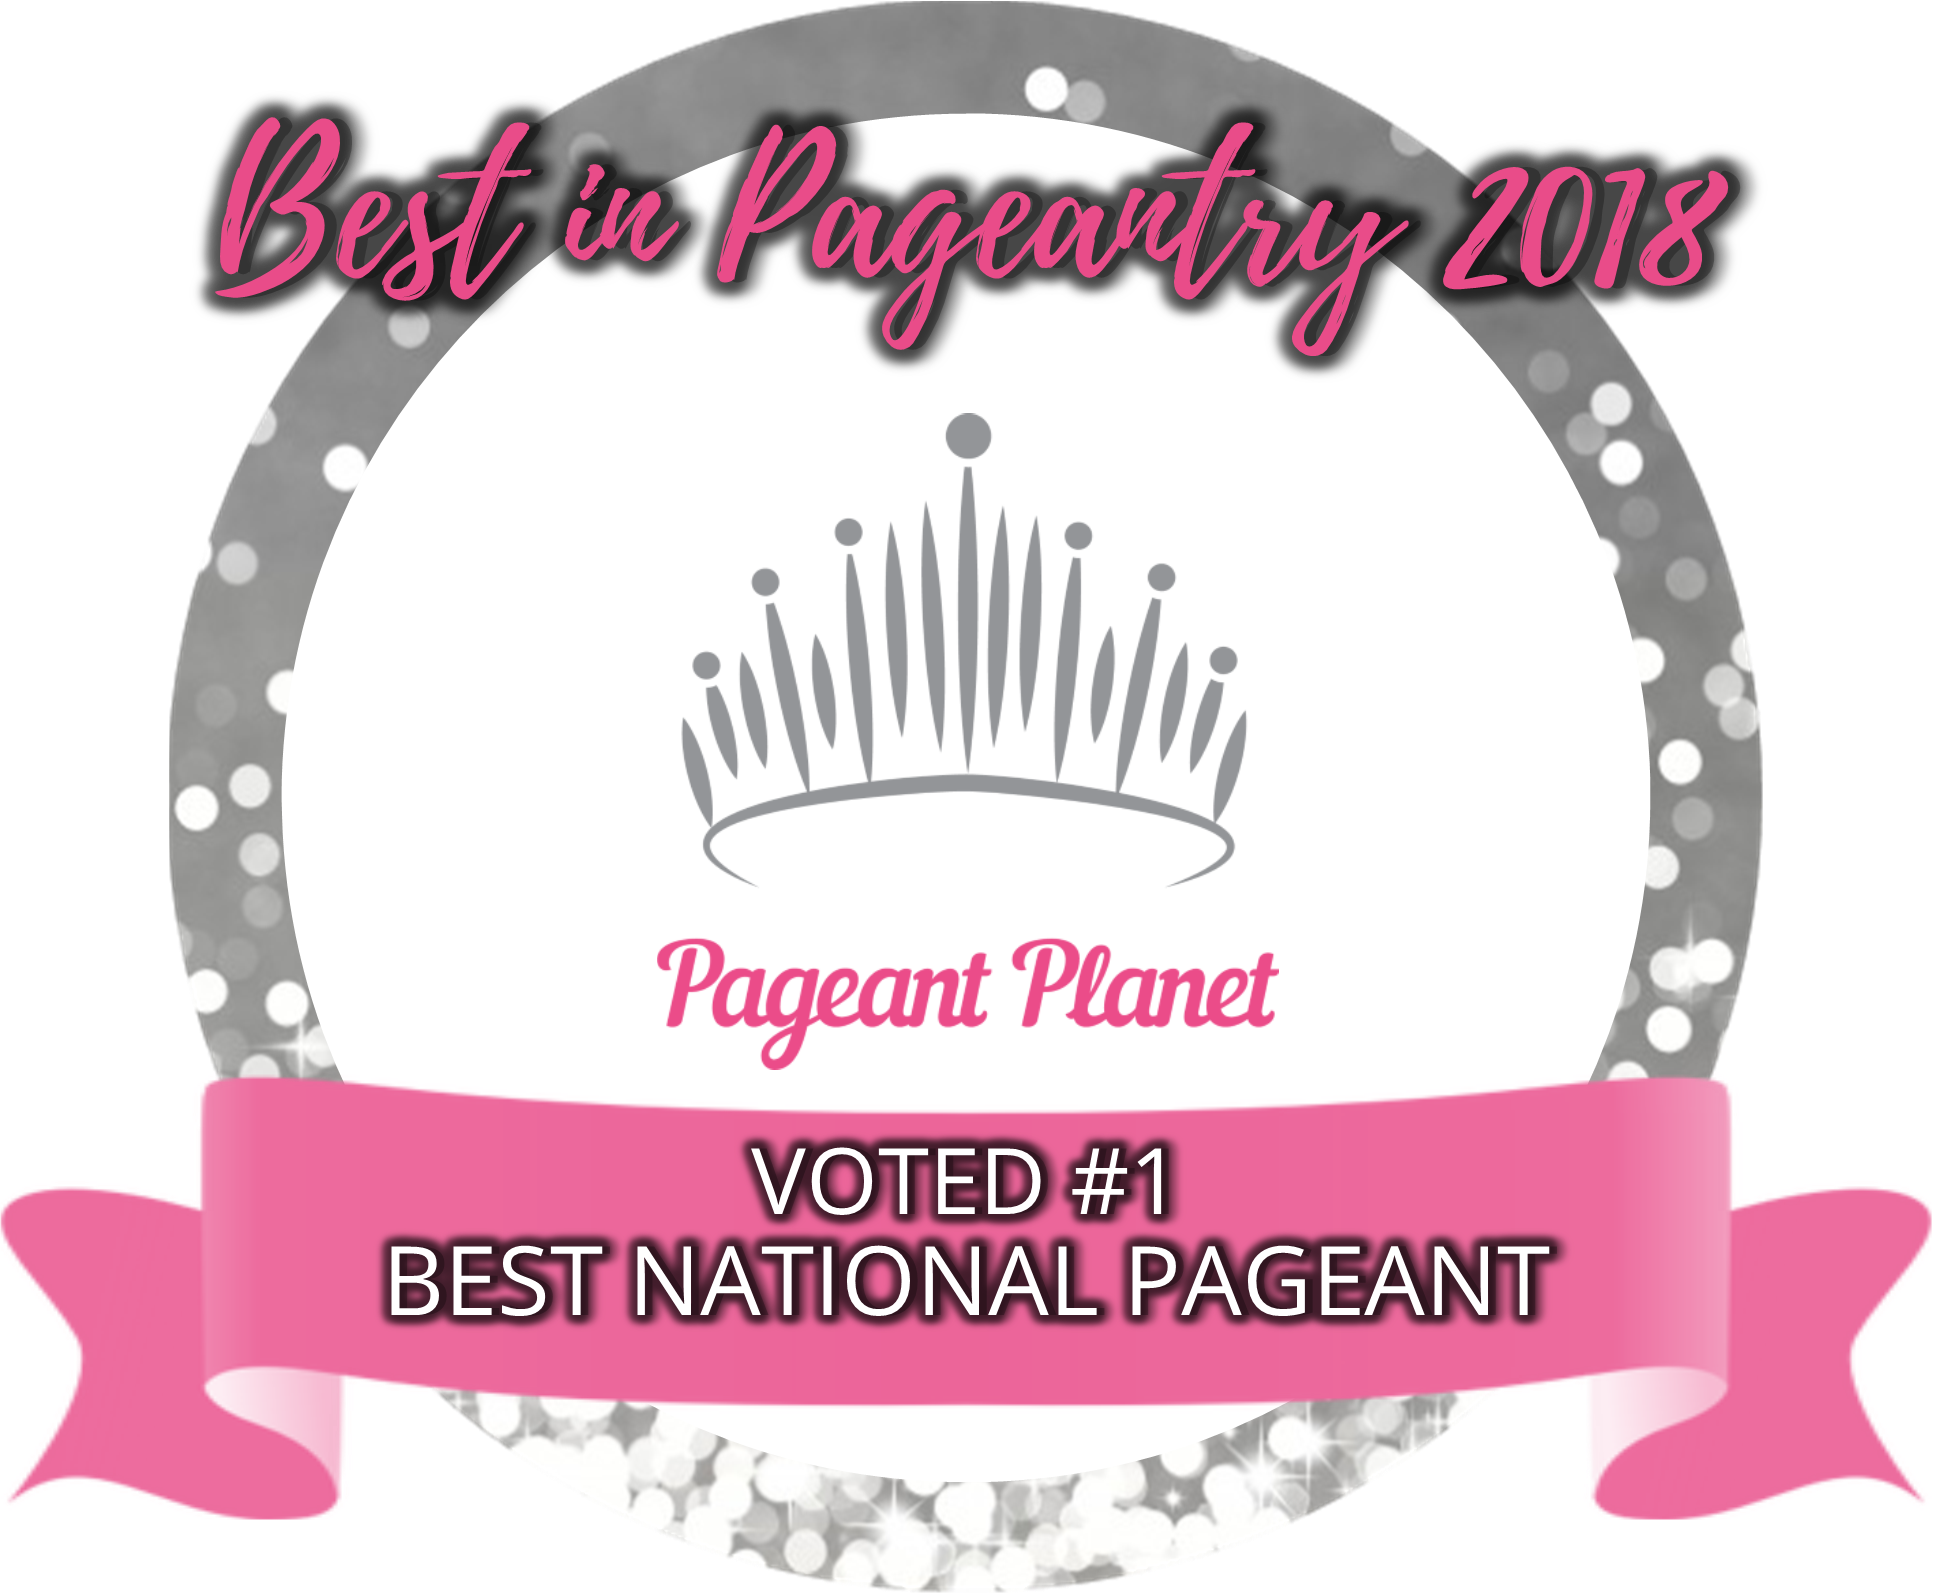 #1 Best National Pageant of 2018